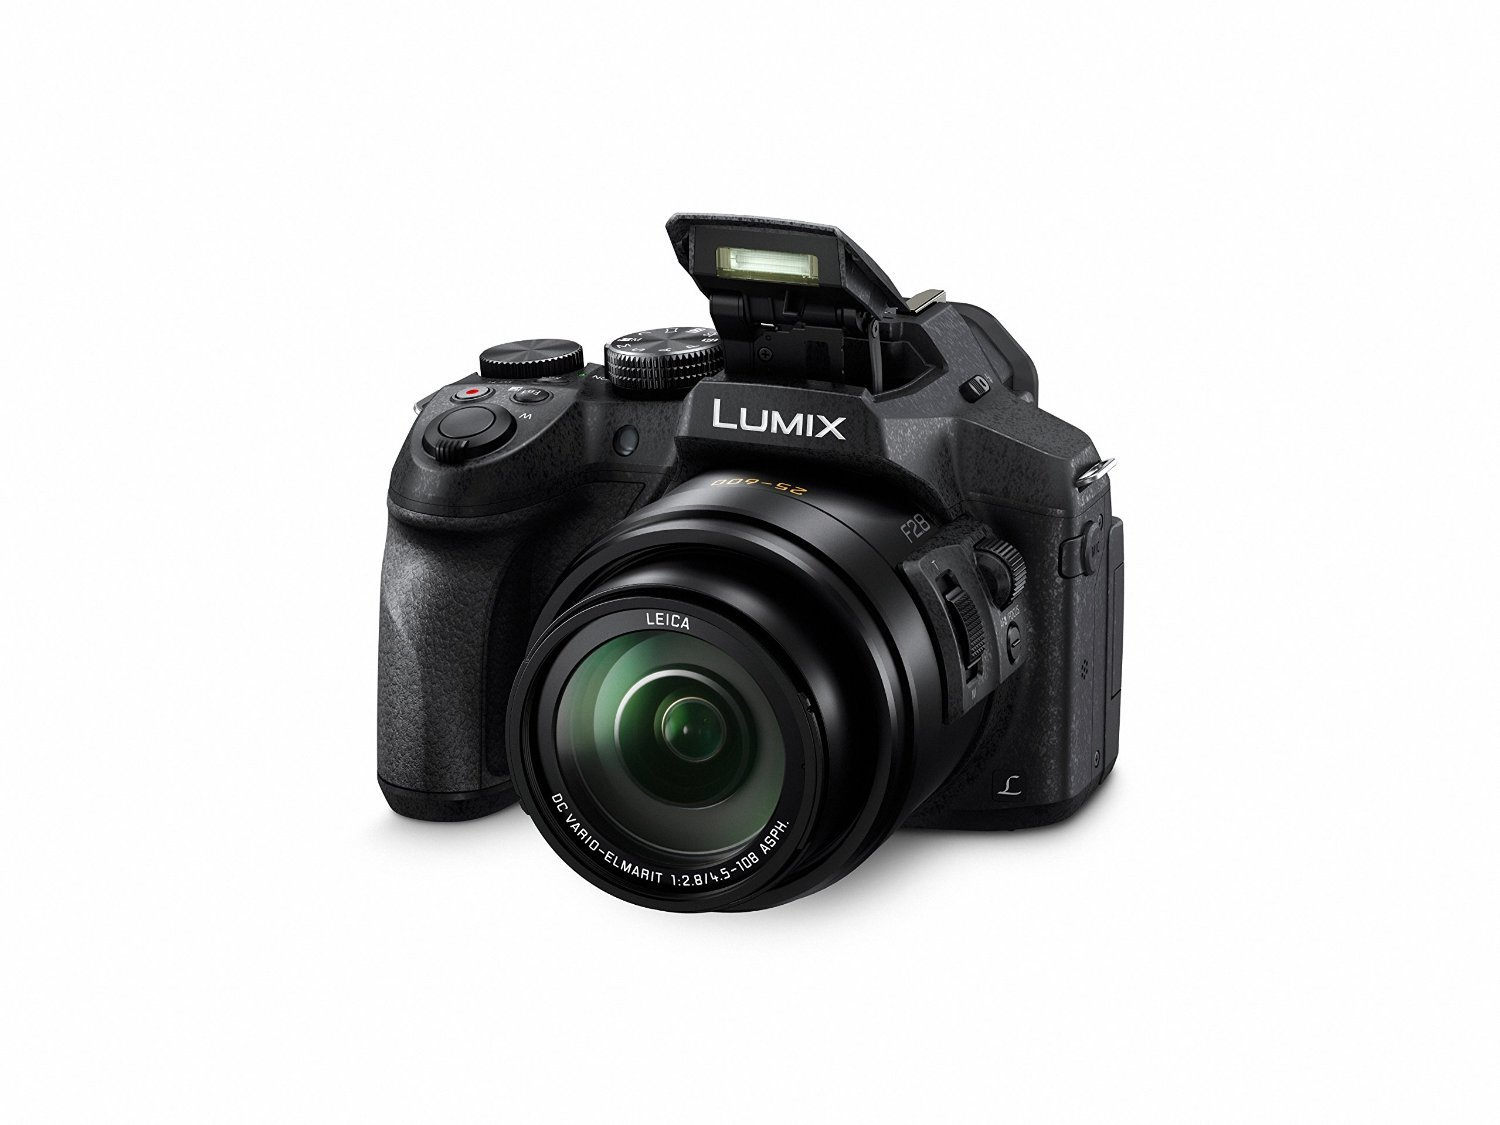 Panasonic DMC LUMIX FZ300